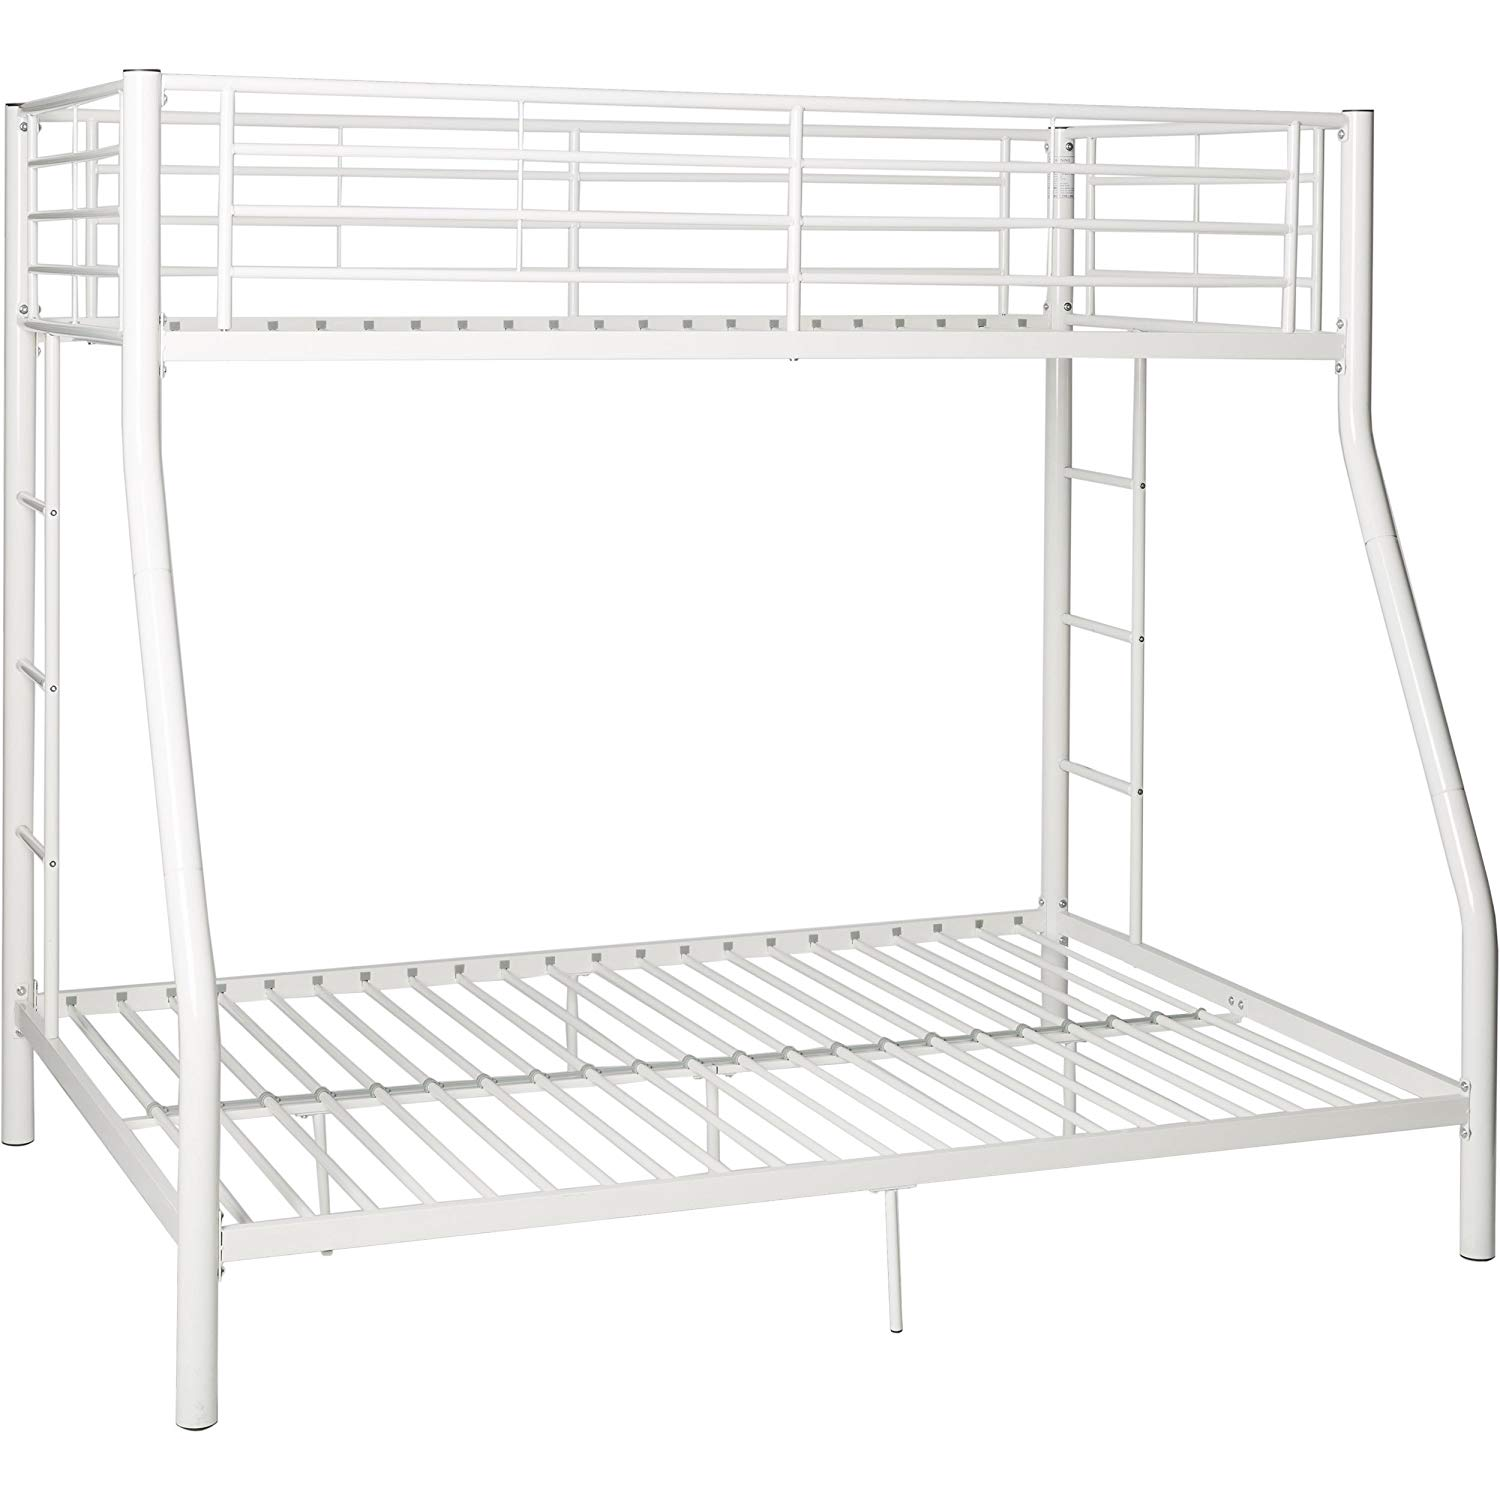 Cheap Ashley Furniture Bunk Bed Find Ashley Furniture Bunk Bed